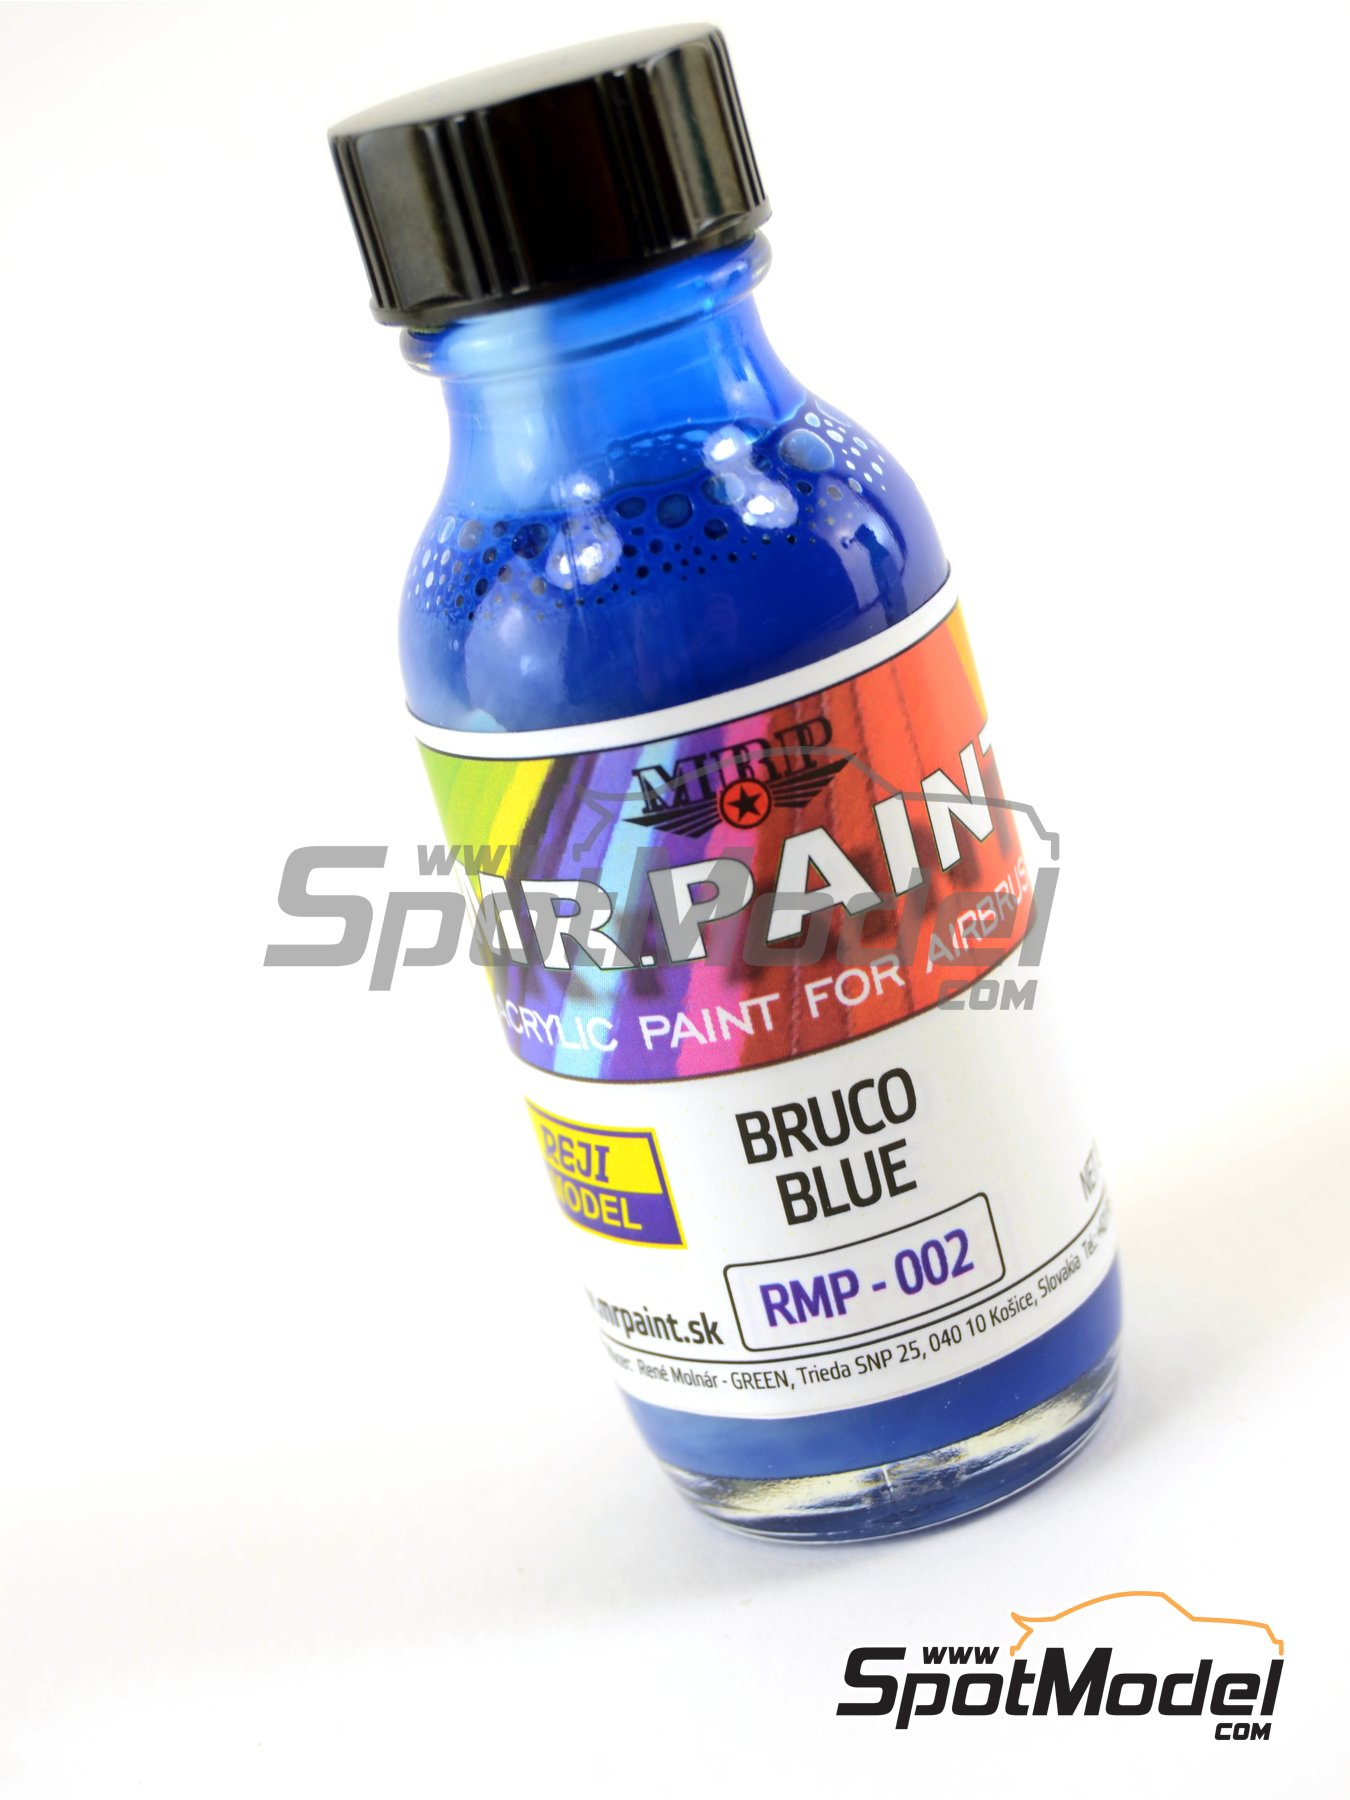 Bruco Blue | Acrylic paint manufactured by Reji Model (ref. RMP-002) image